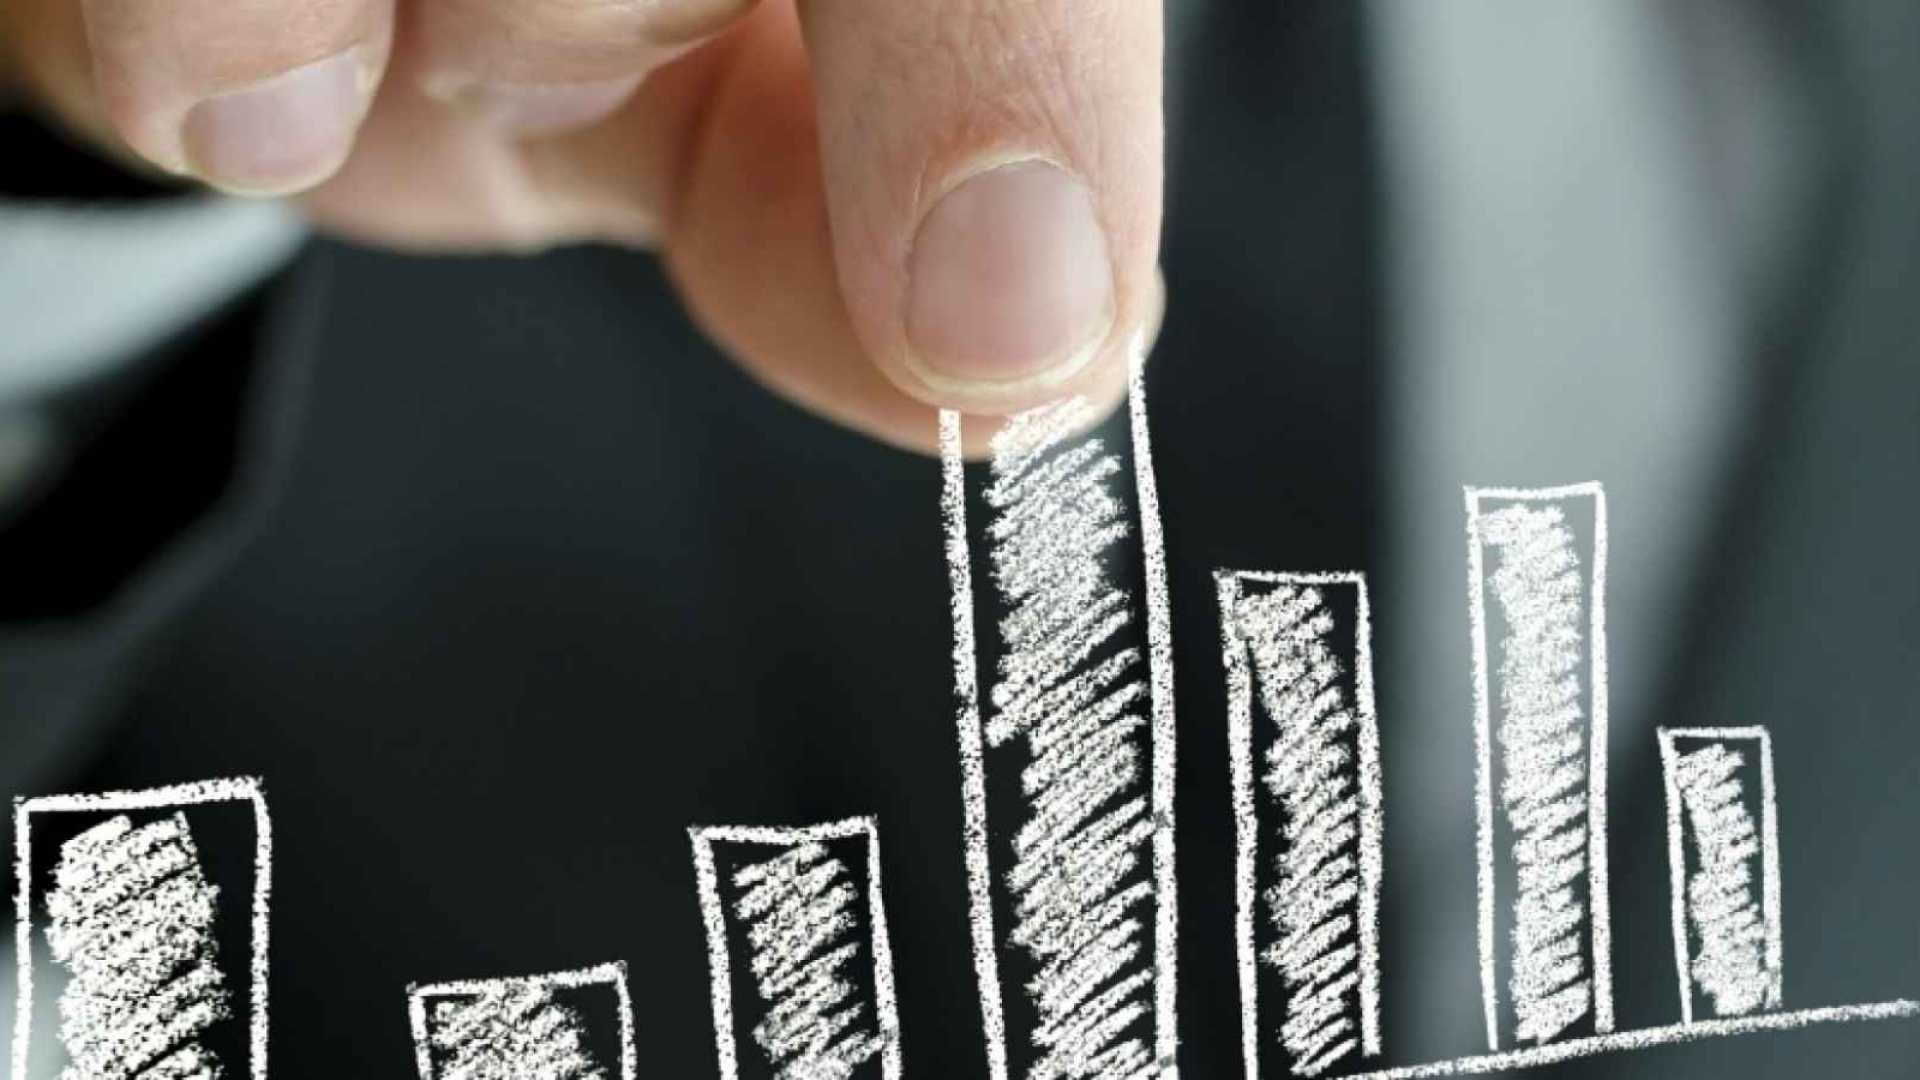 Before Selling, Focus on Increasing Your Startup's Value: 12 Tips